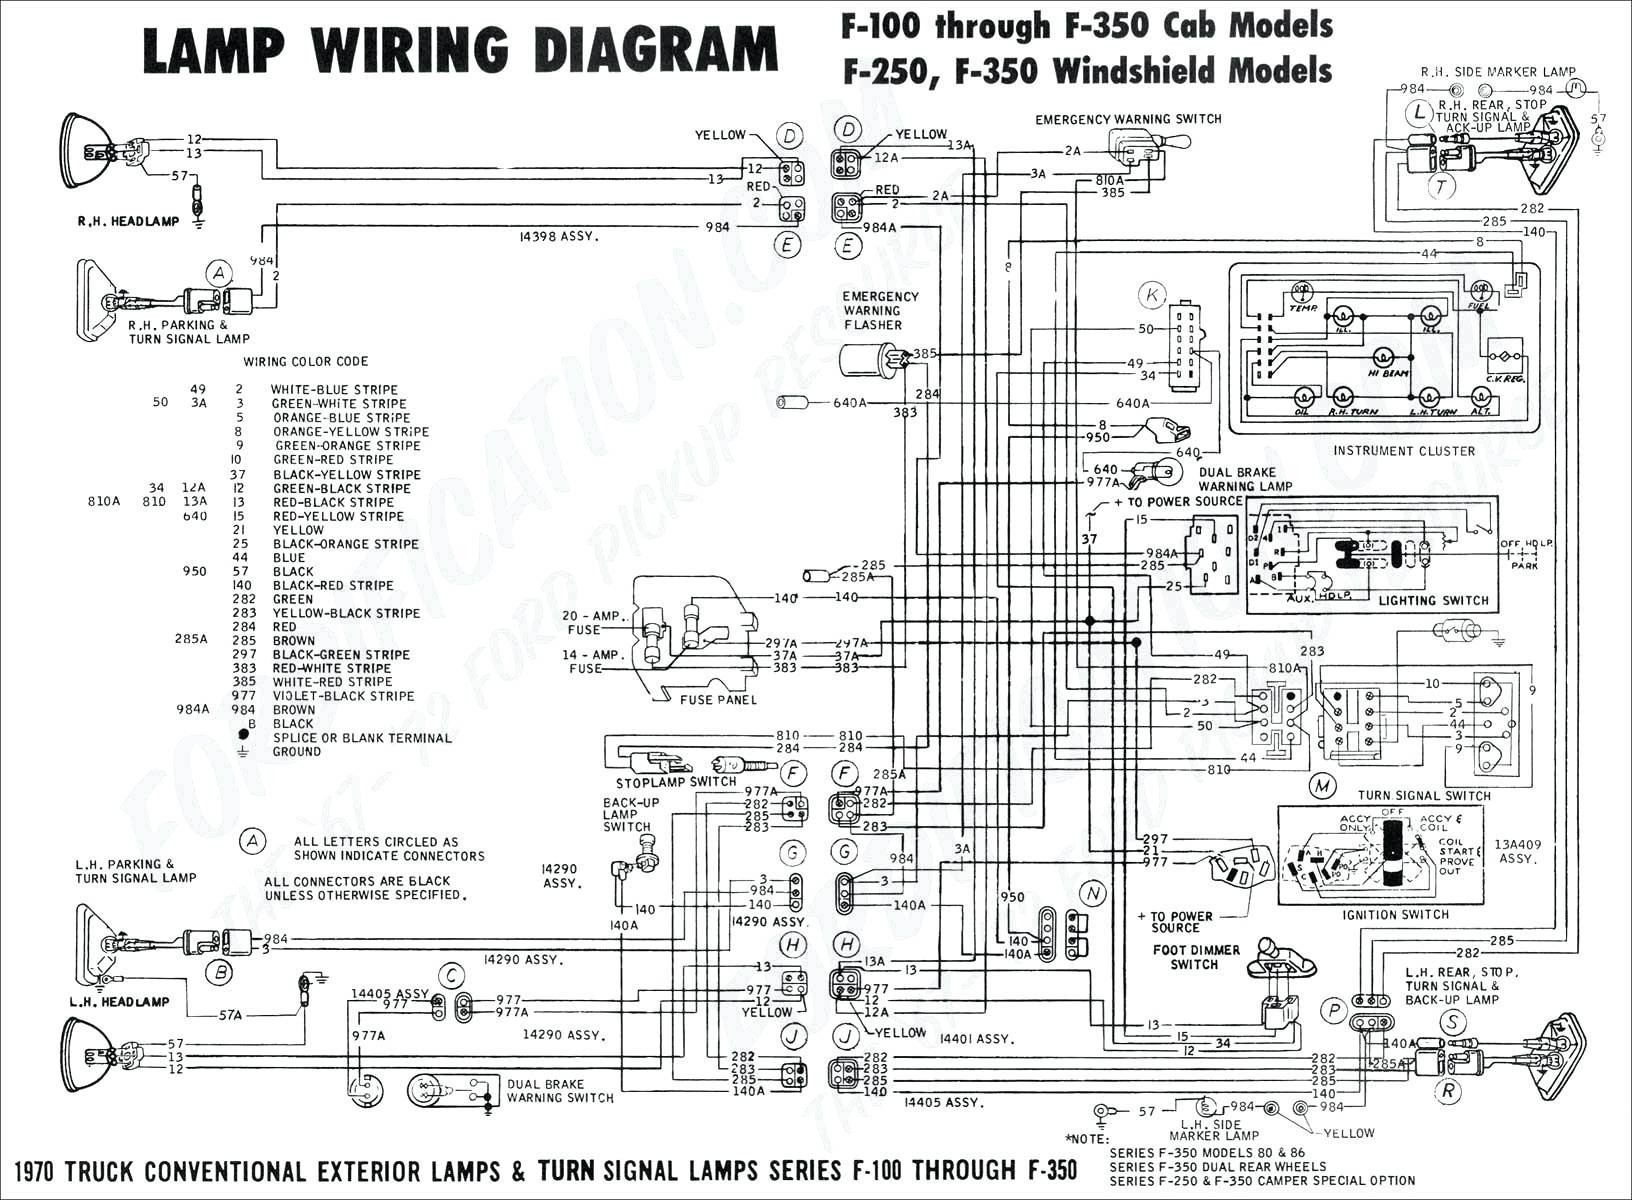 1991 F150 4x4 Fuse Box To Coil Wiring Diagram Toolbox 2002 Ford F 150 Ignition Coil Diagram